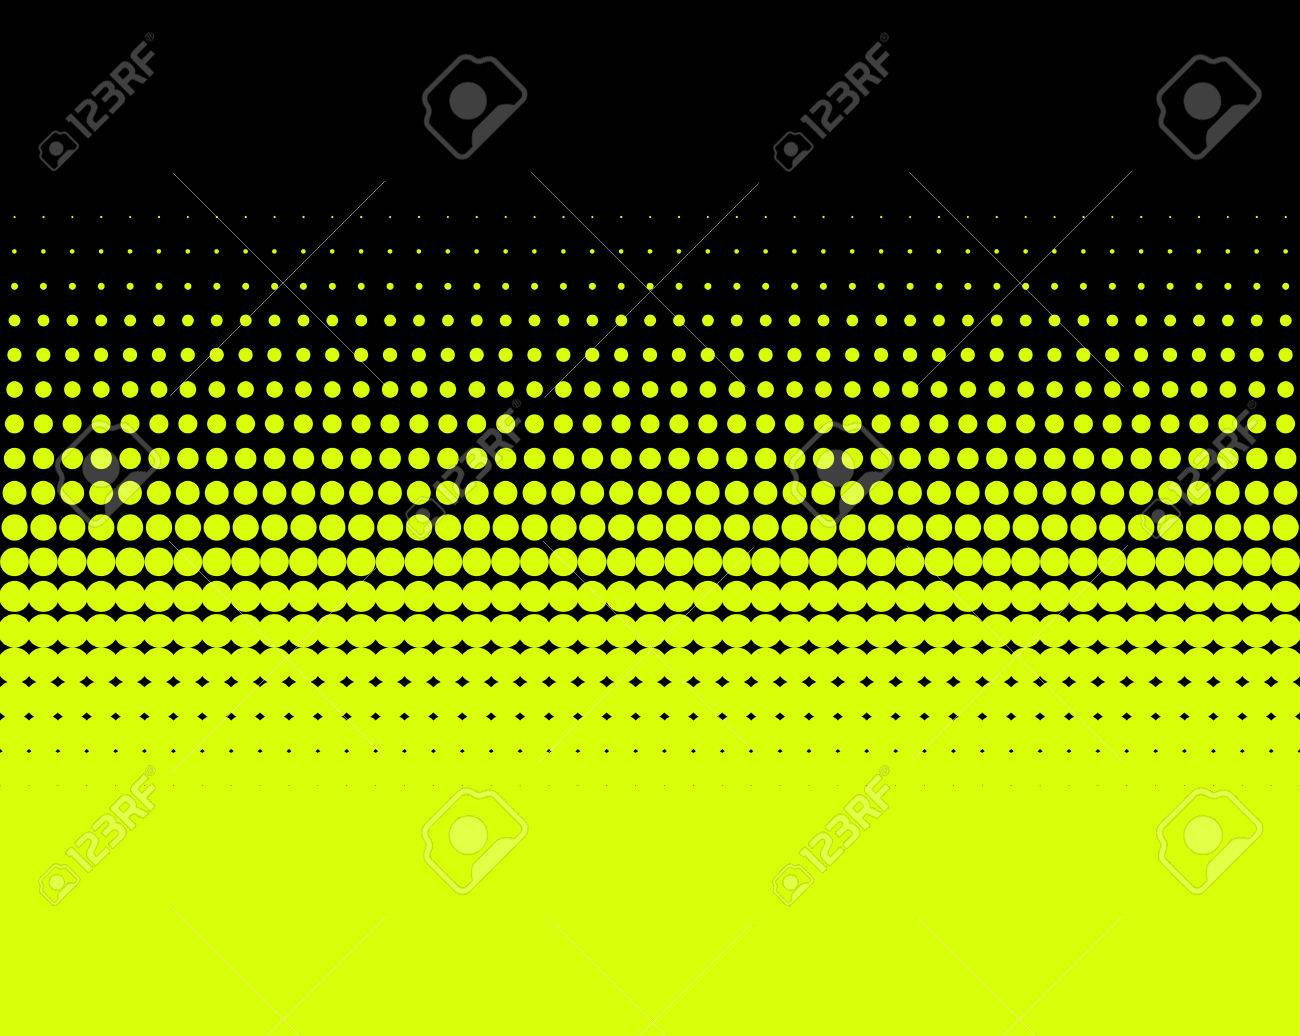 Background image transition - Stock Photo Transition Of Yellow Dots On Black Background